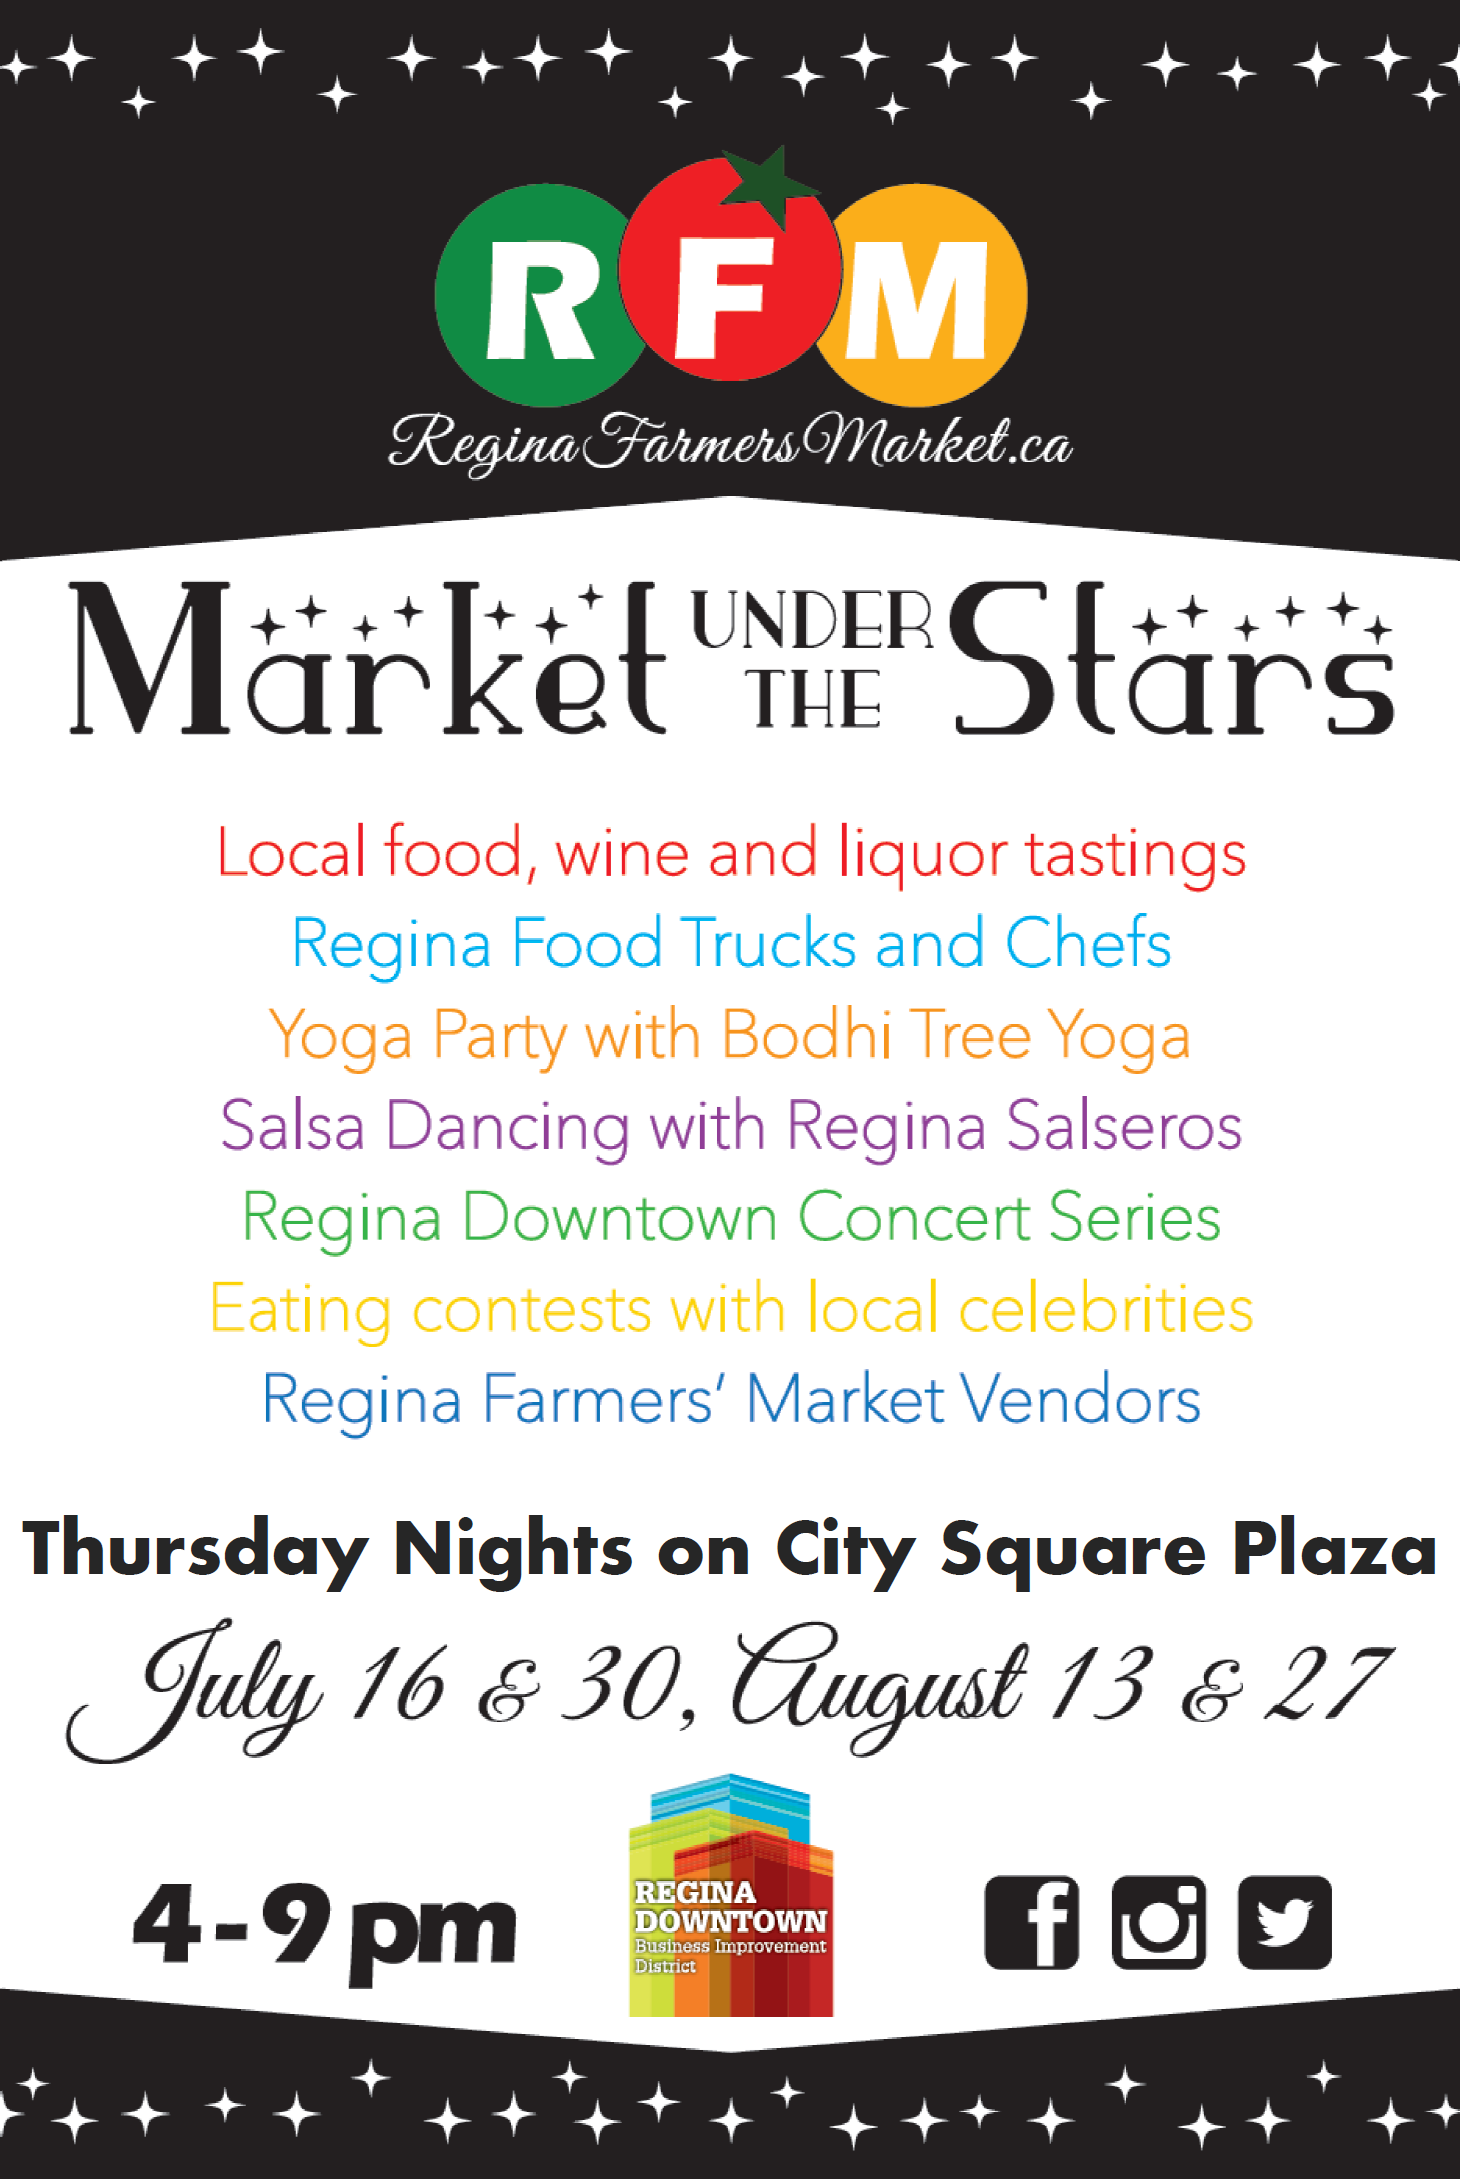 Market under the Stars Contest and News! - Image 1